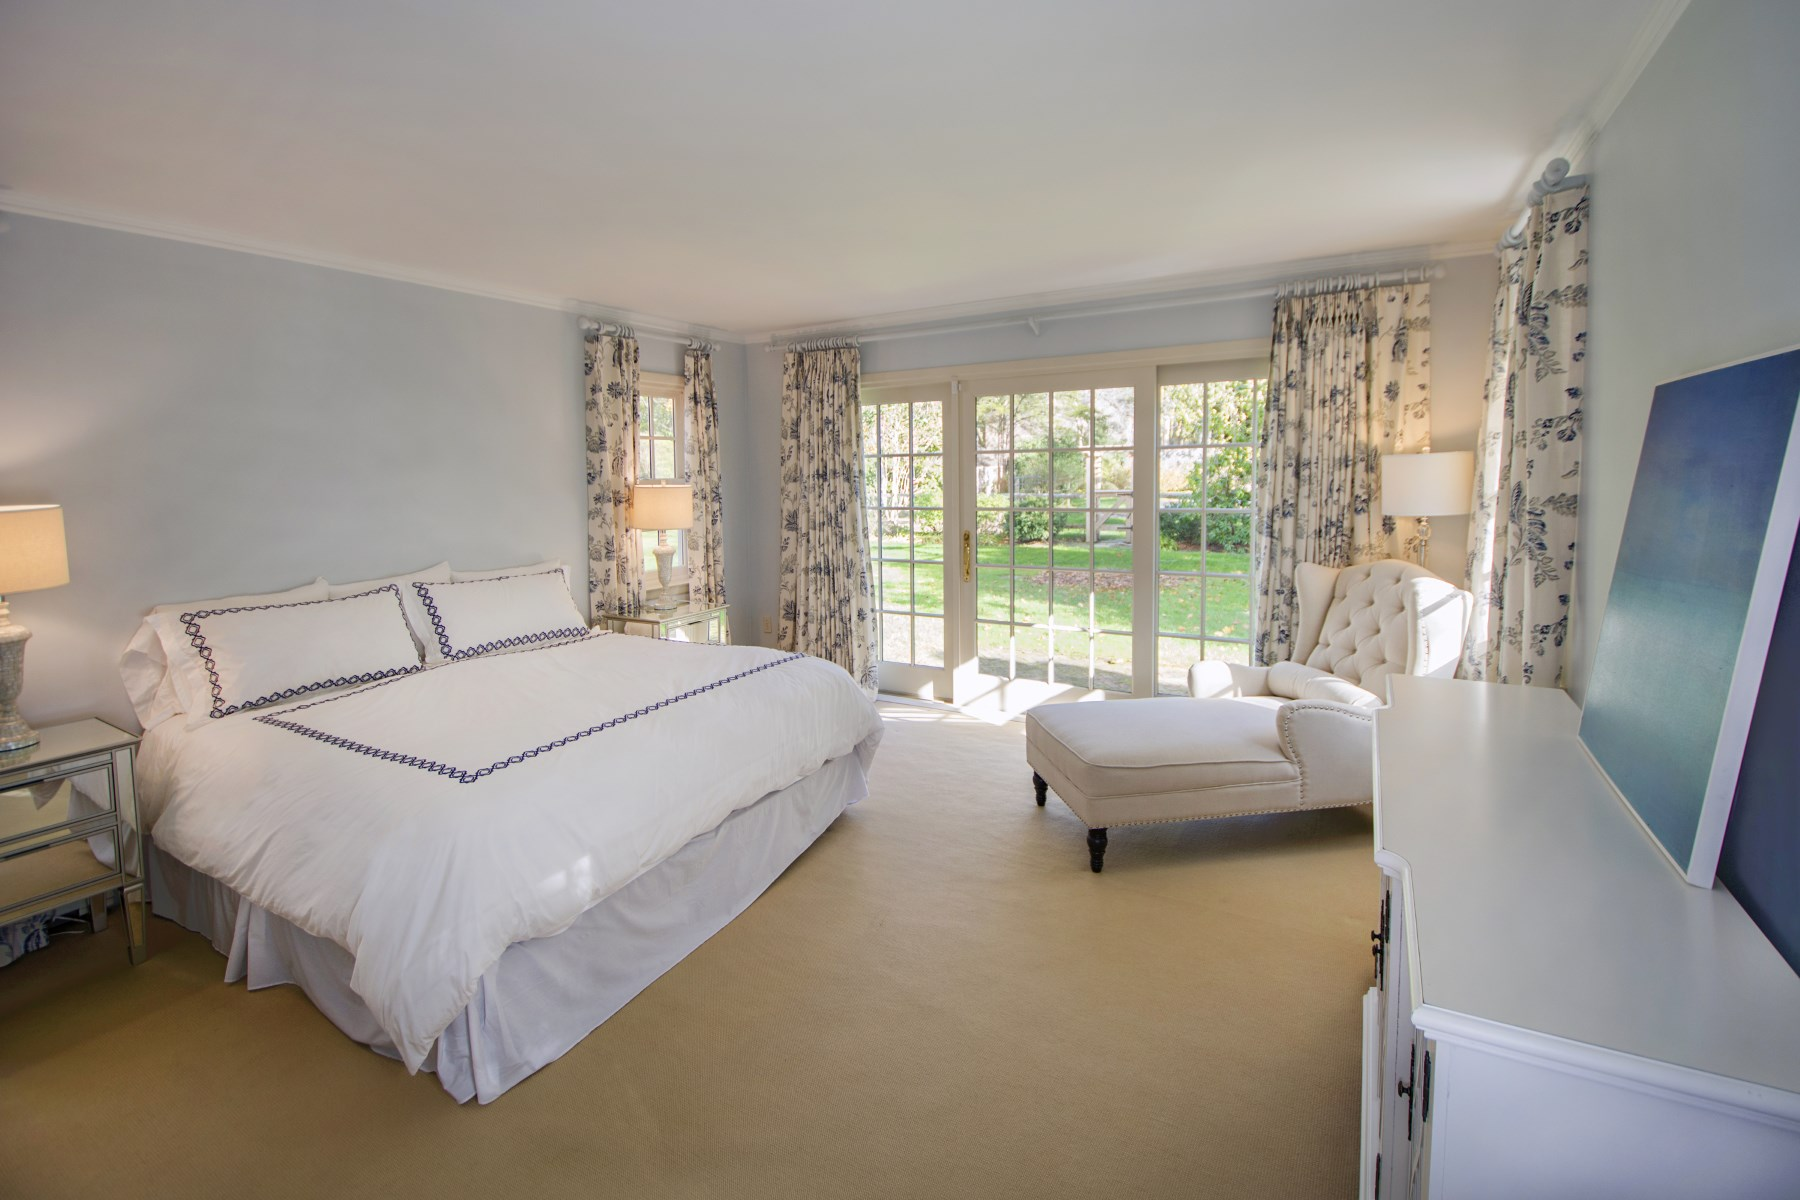 """Additional photo for property listing at Lovely Sagaponack """"Cottage"""" with Pool 83 Sagg Main Street Sagaponack, New York 11962 United States"""